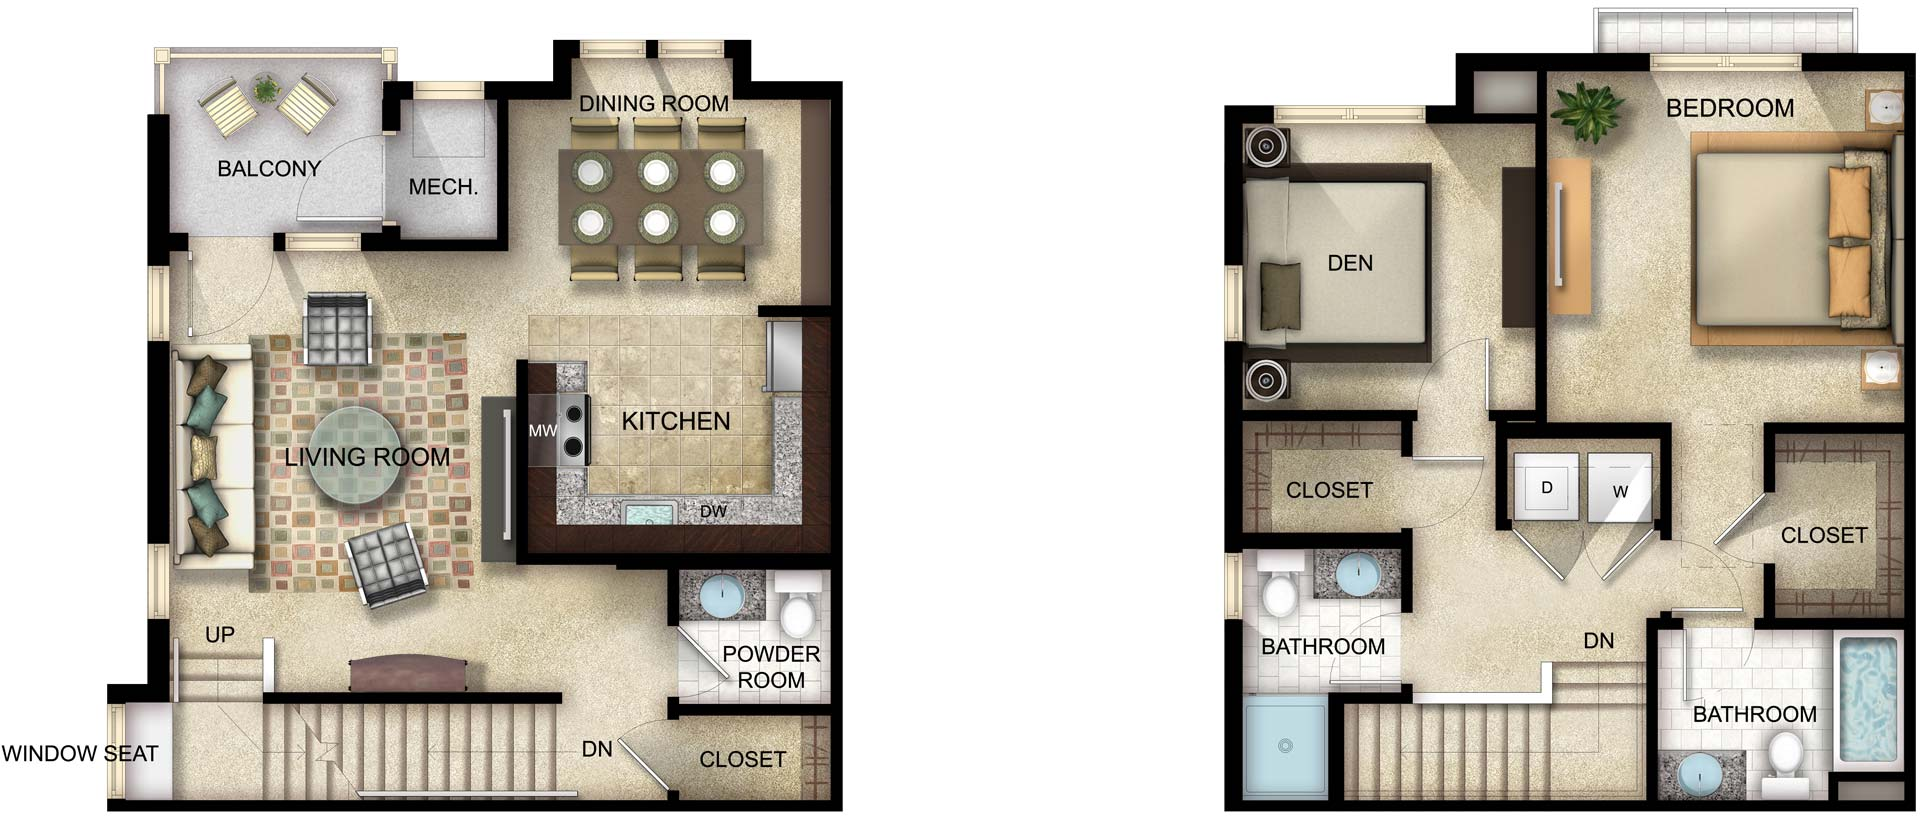 3d Room Design Software Floor Plans Amp Site Plans Aareas Interactive Inc